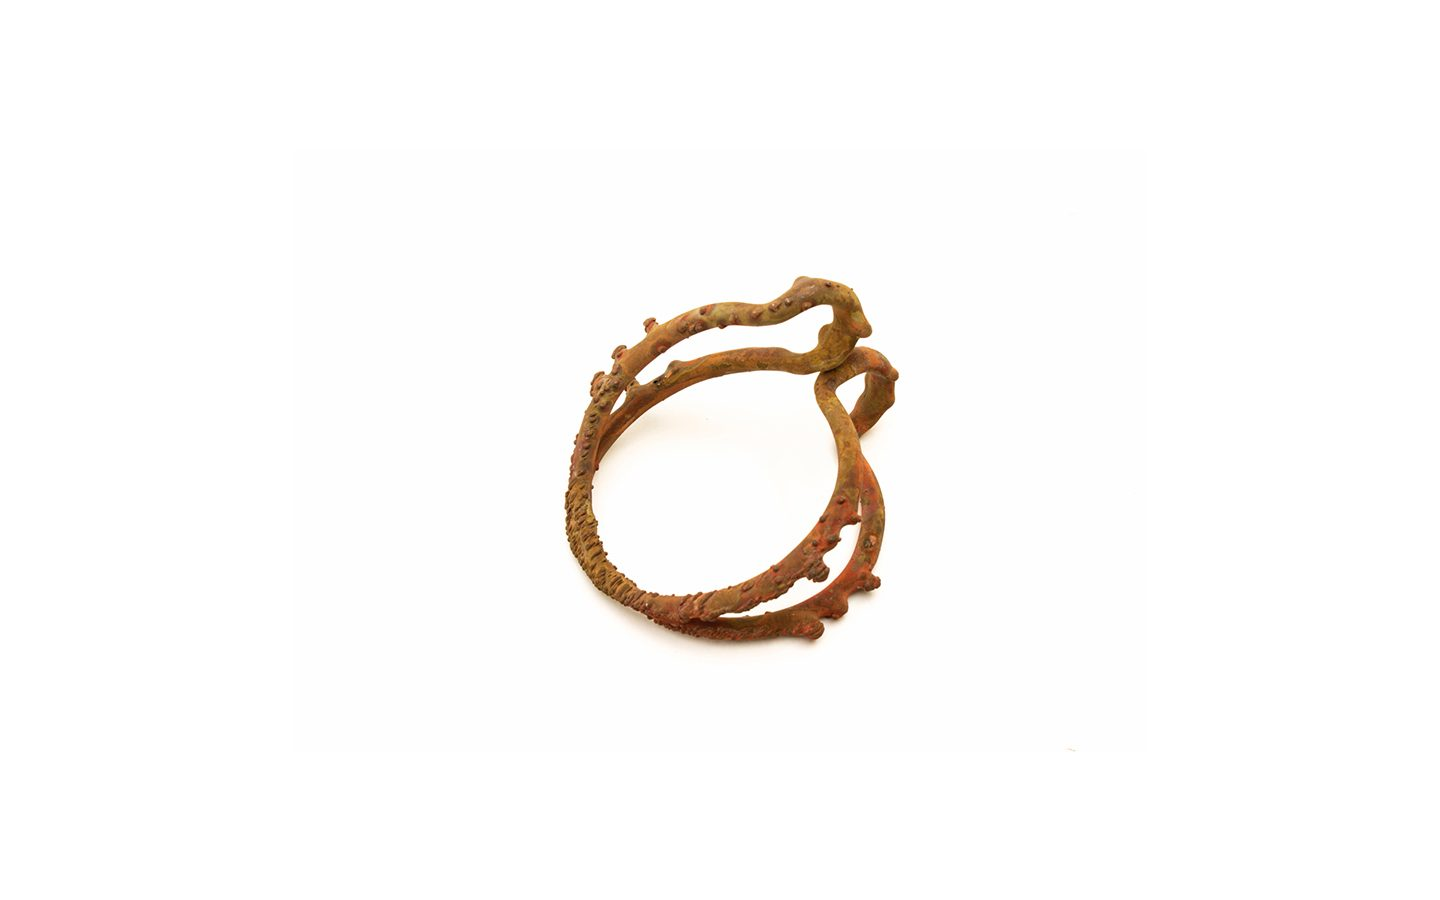 Bangle 5 – 2016 – copper wire ; copper – 115X100X70 mm Photo by Qi Wang